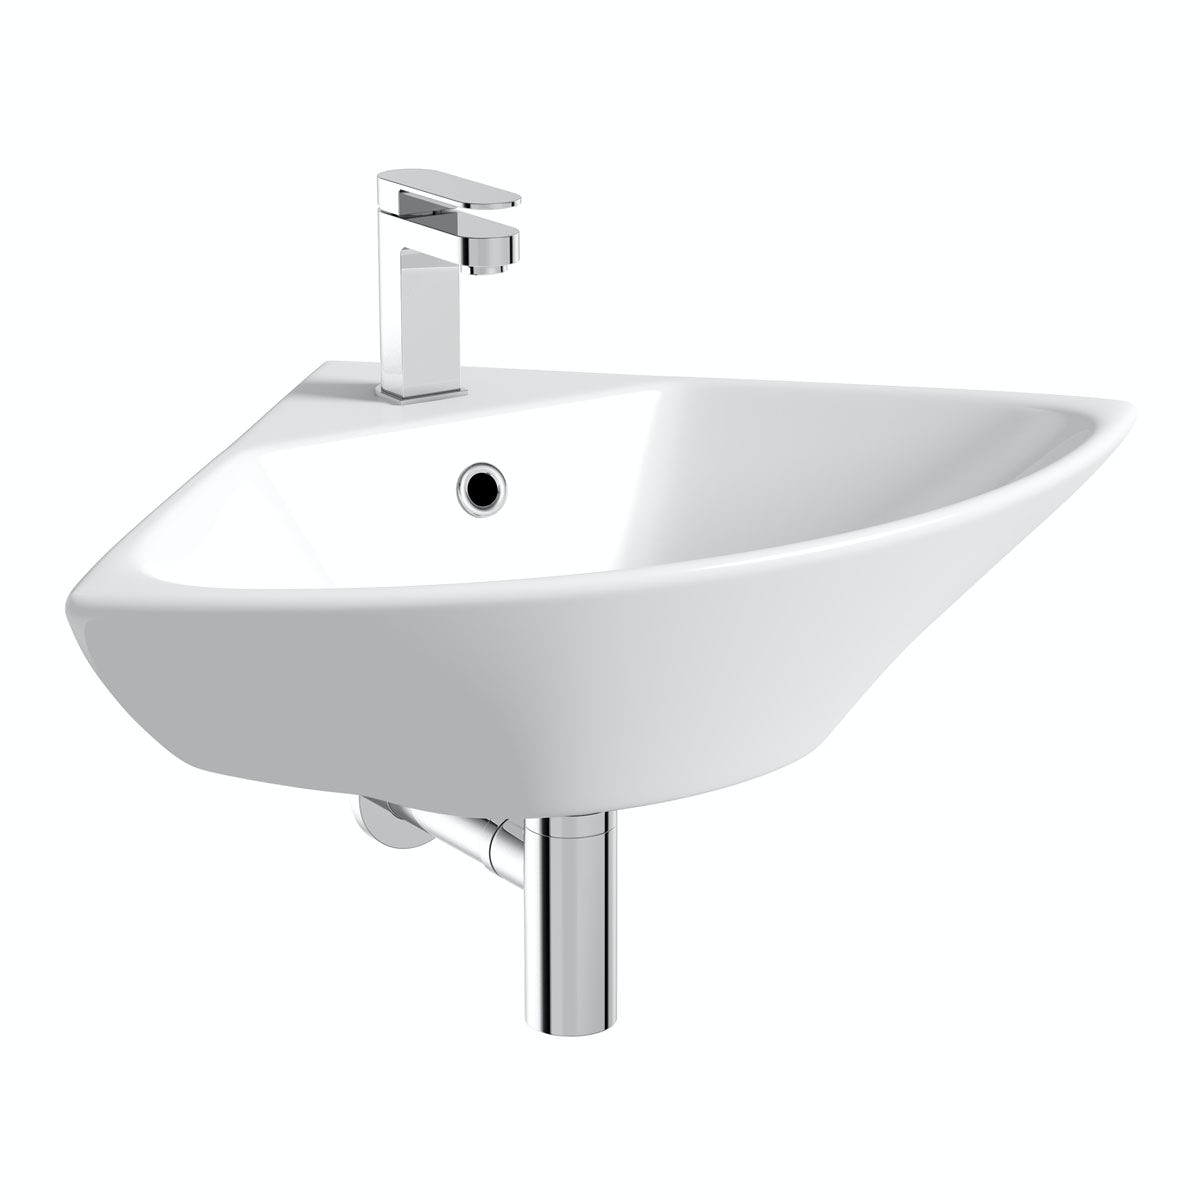 Derwent corner wall mounted basin